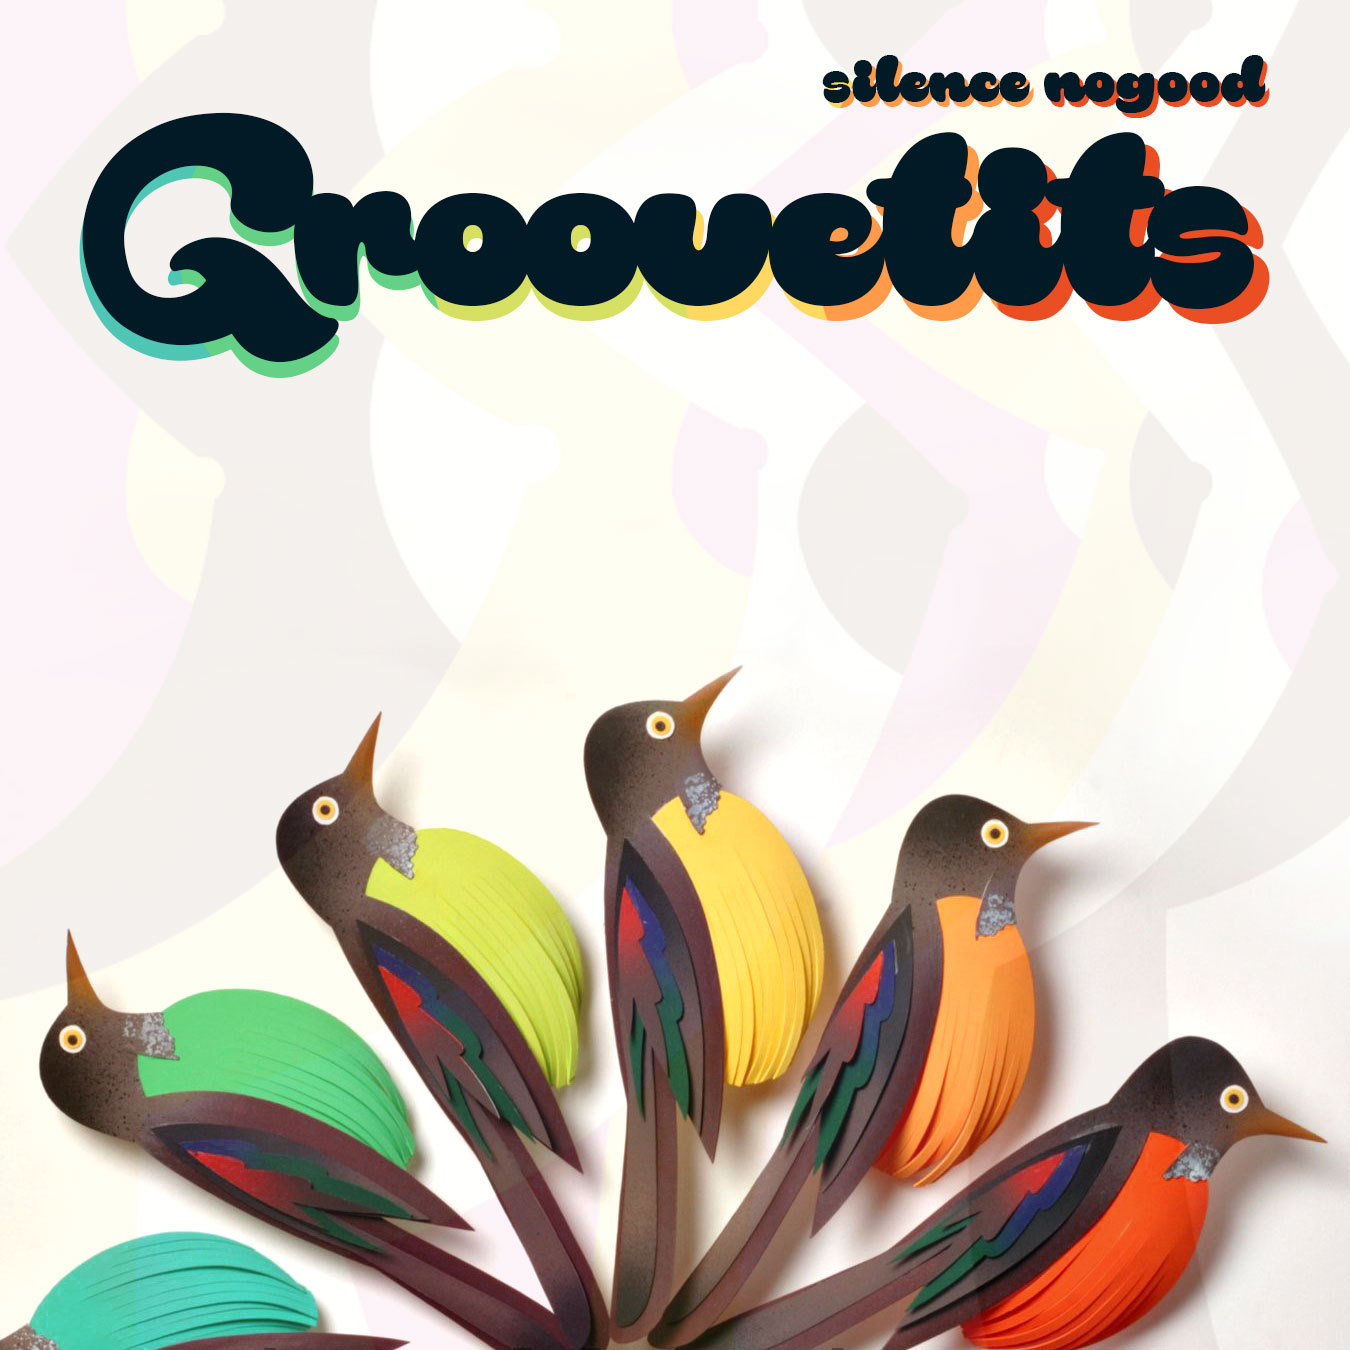 Groovetits